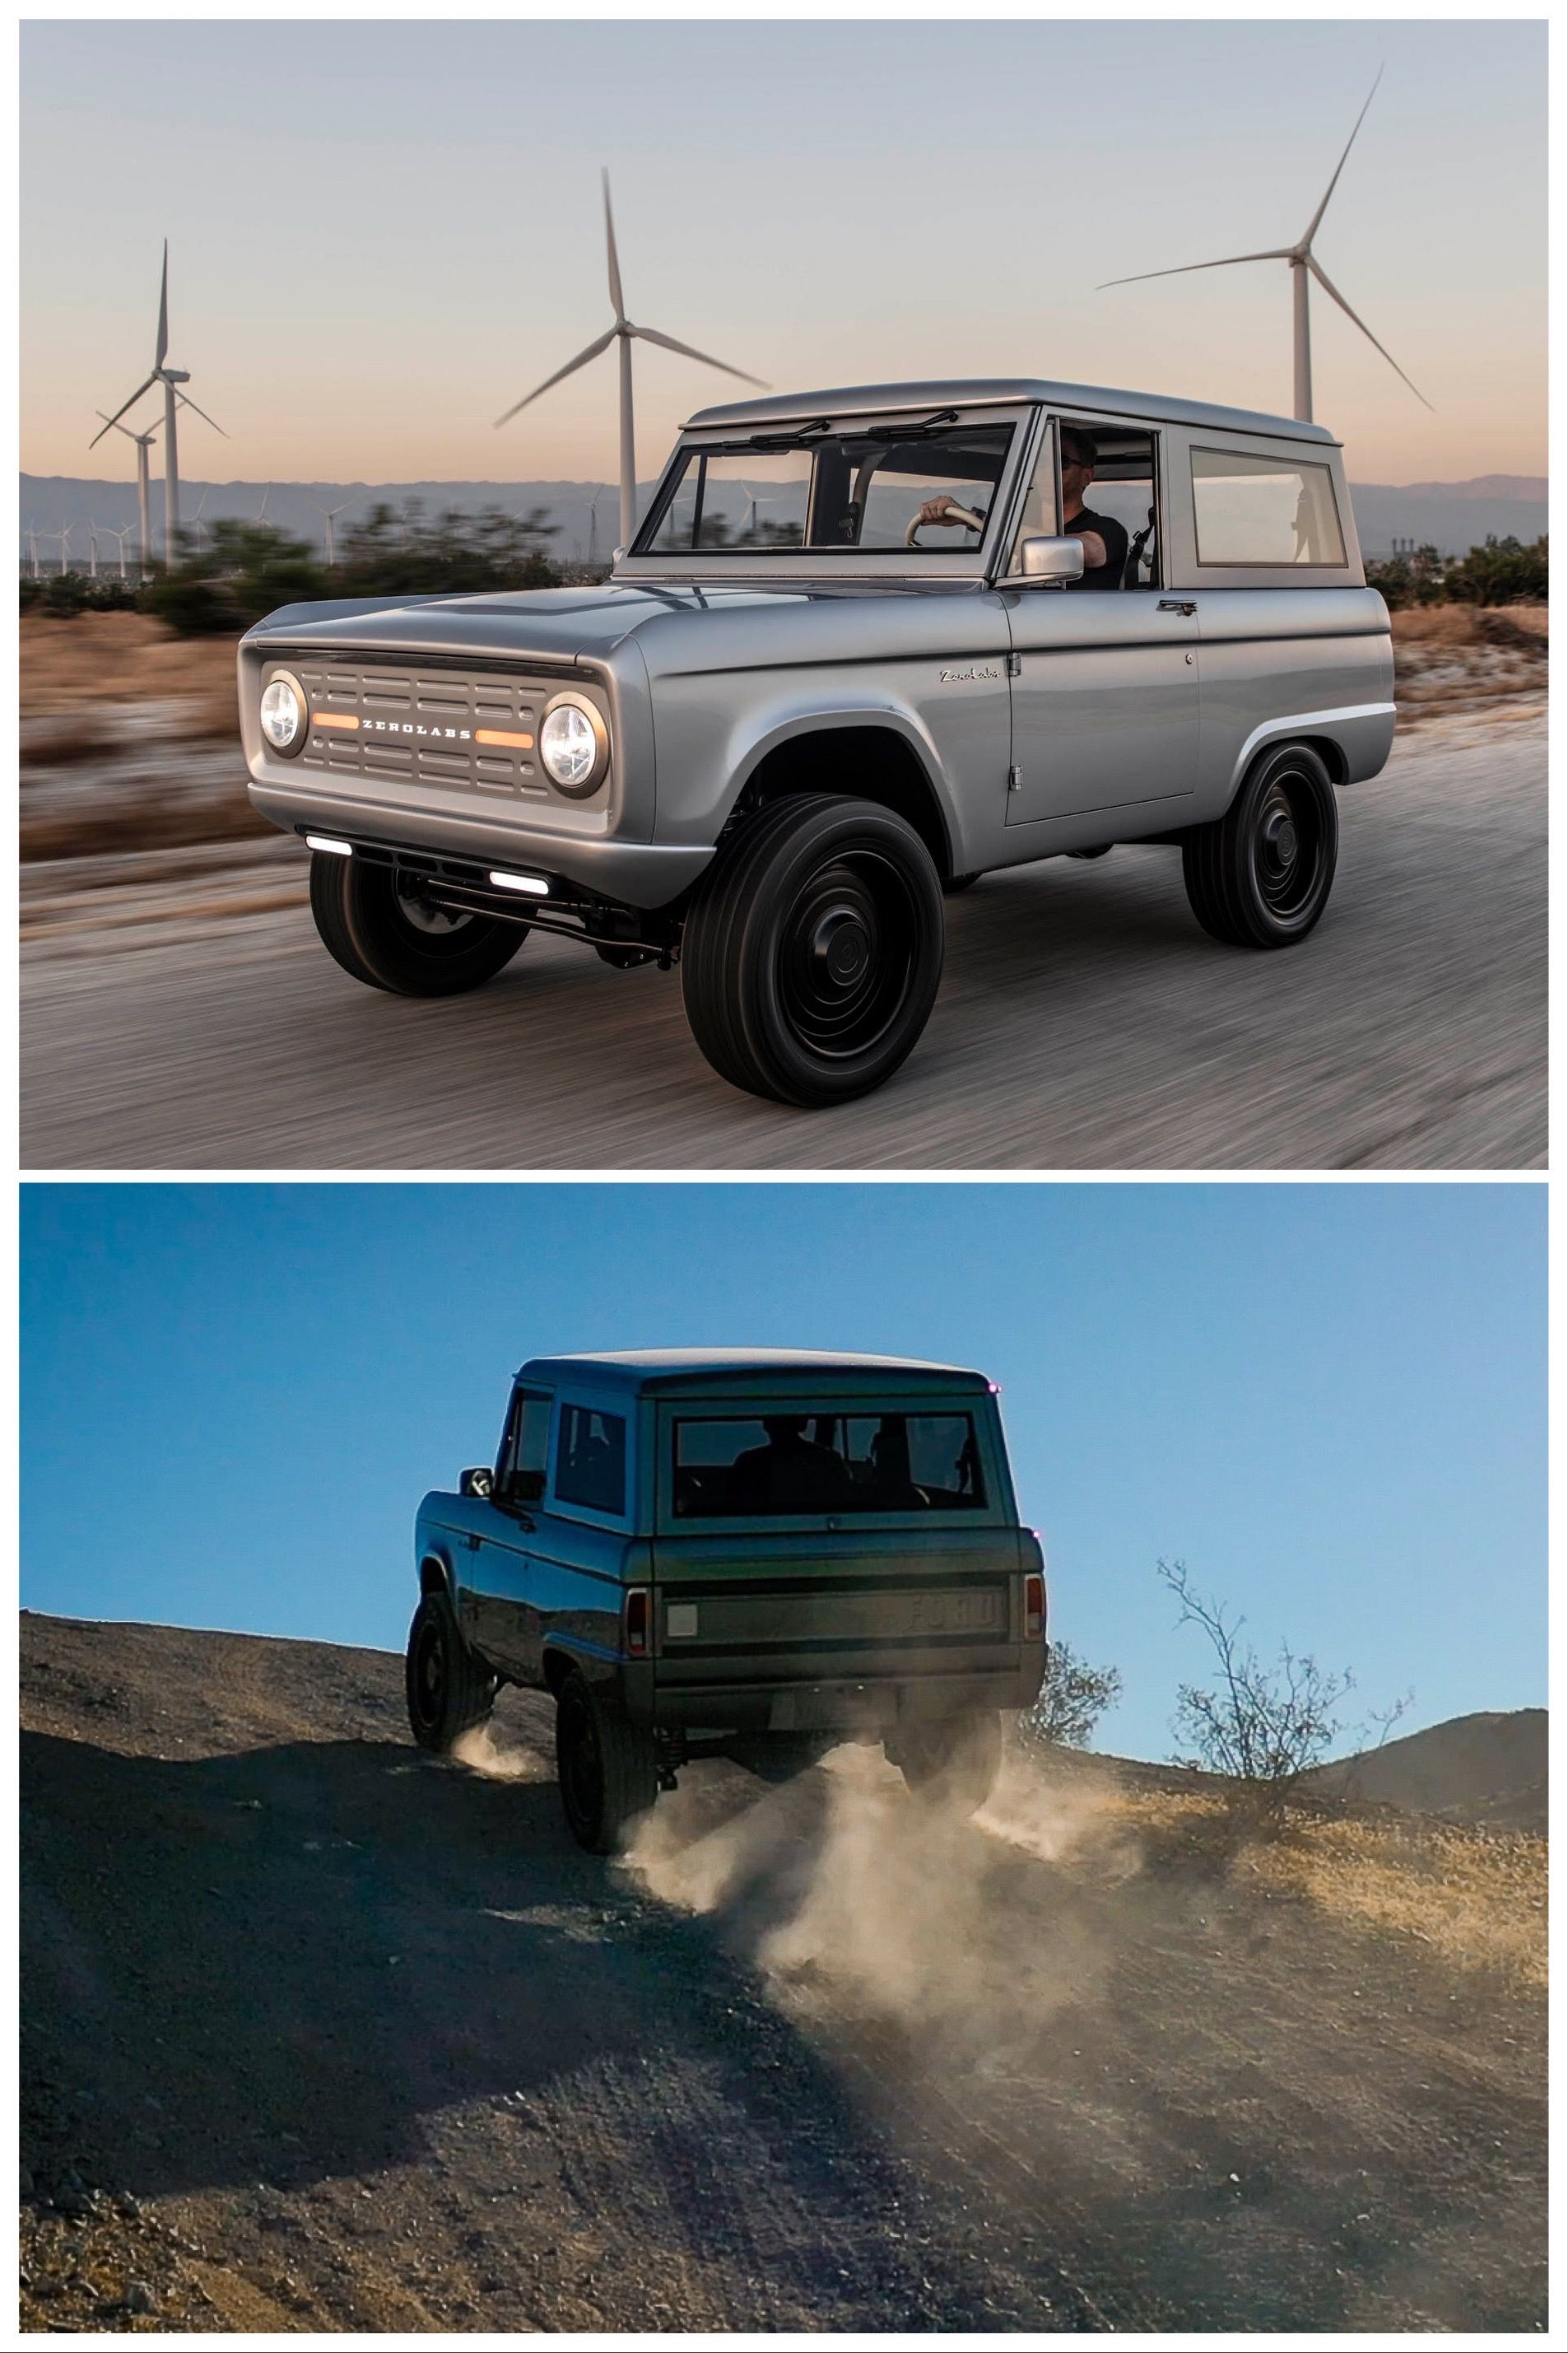 Ford Bronco Ev Restomod Starting At 185 000 With Up To 600 Hp In